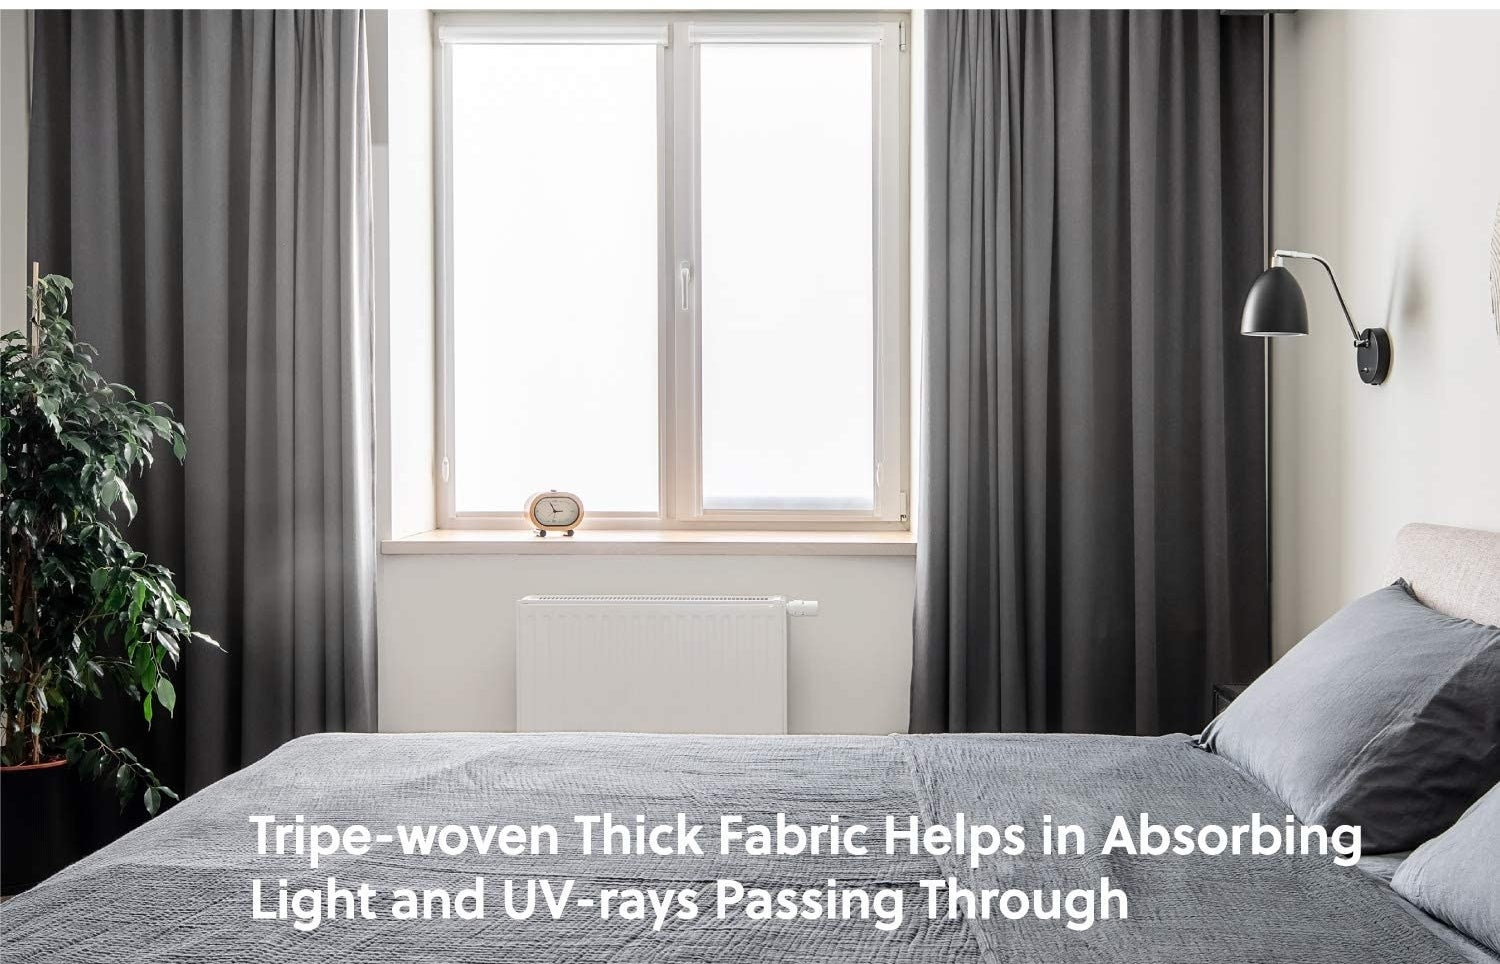 Curtains hanging in a bedroom with a window letting in sunlight